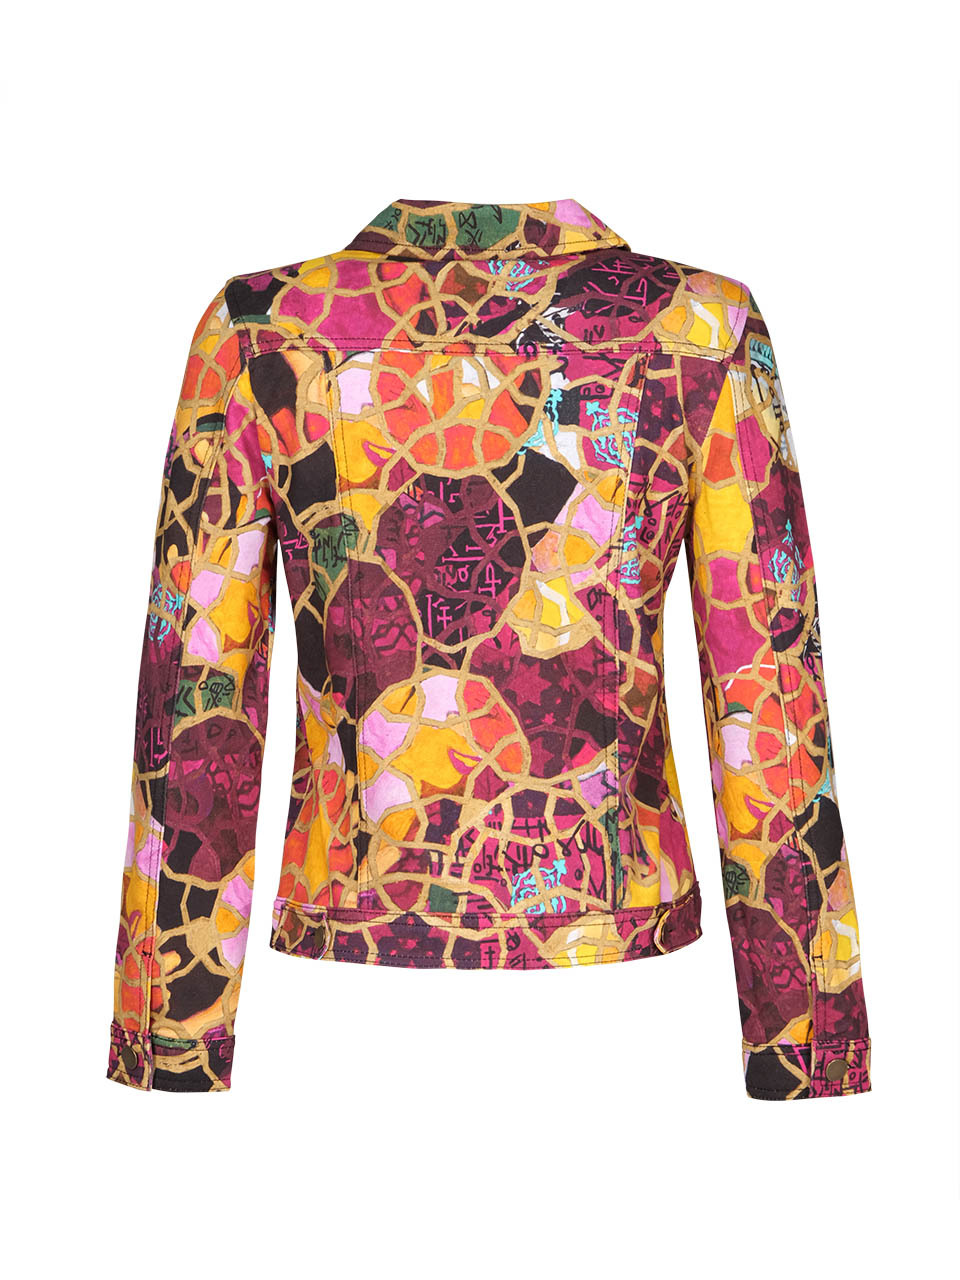 Simply Art Dolcezza: Blessings With Rings Soft Denim Jacket